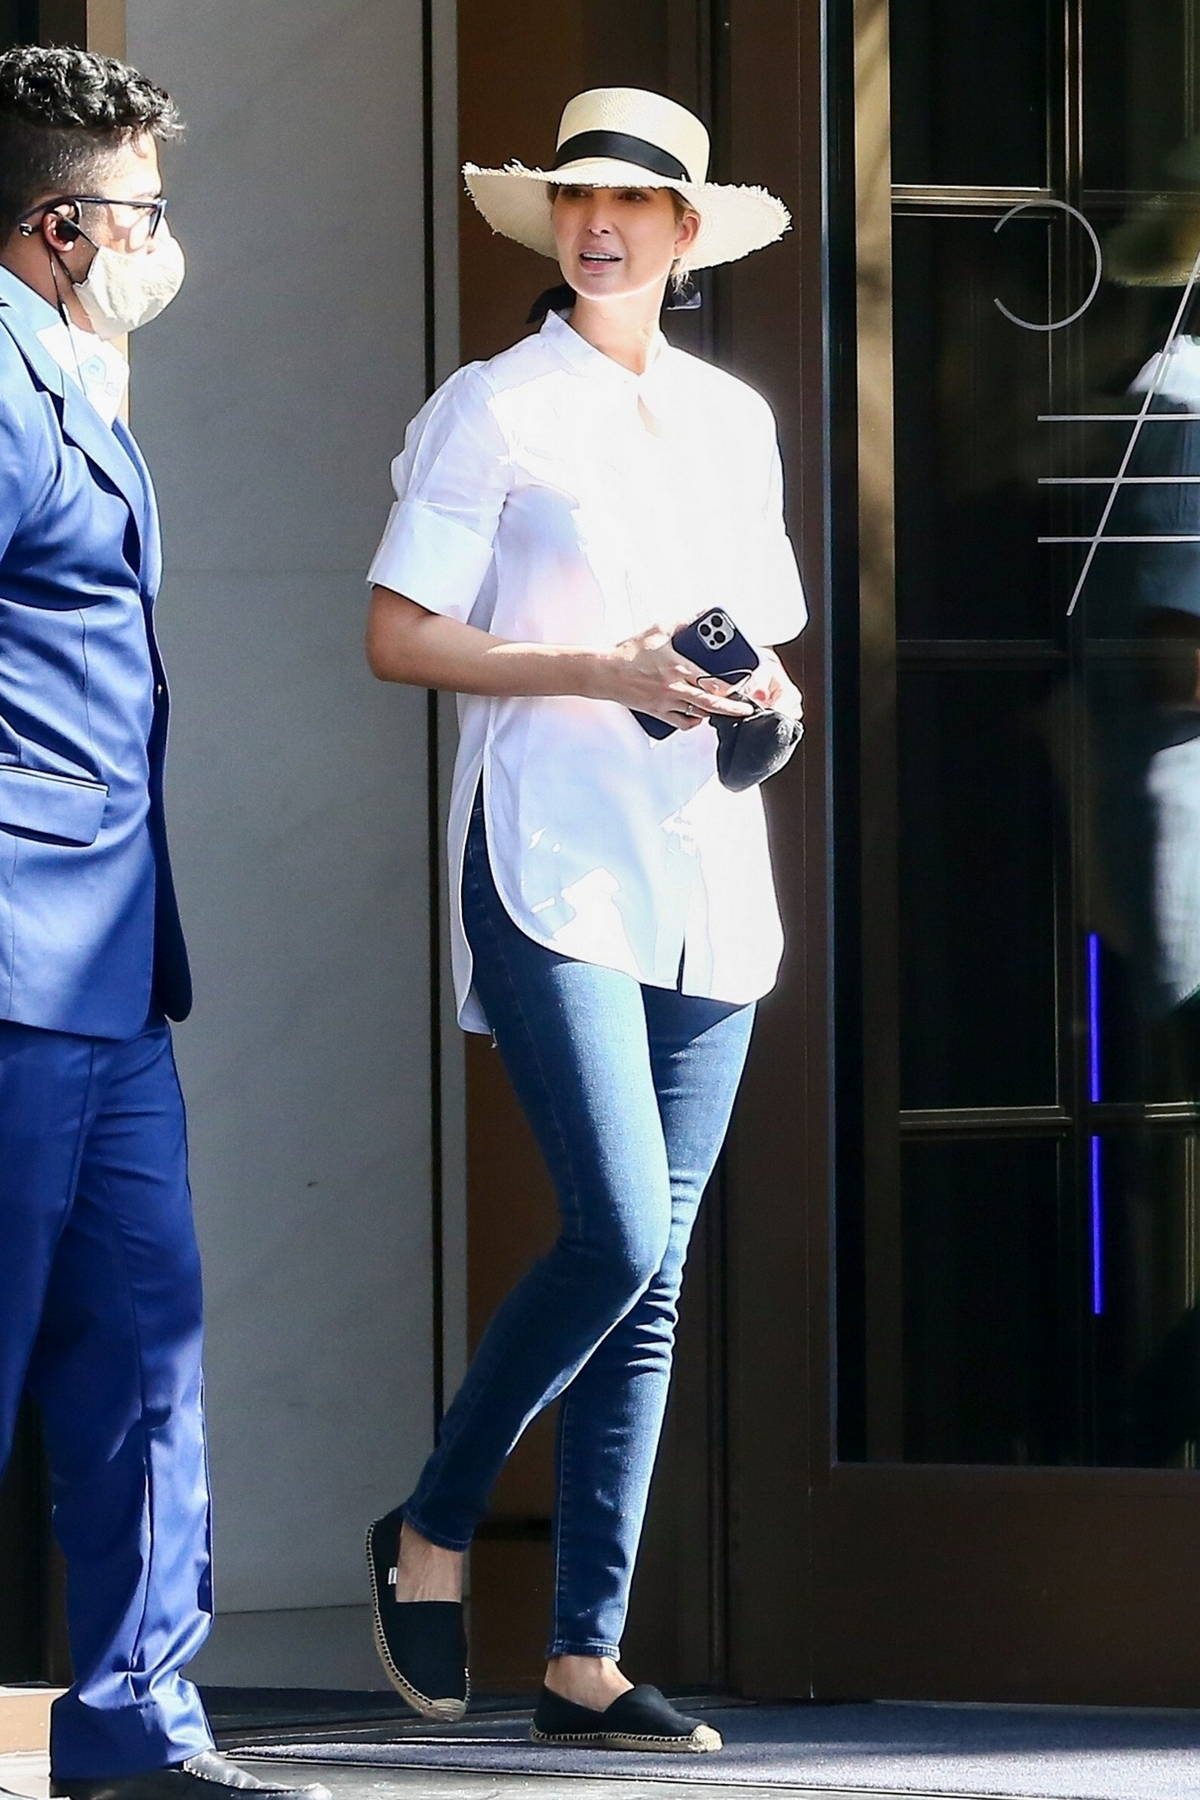 Ivanka Trump looks great in a white shirt and blue jeans as she leaves her luxury condo in Miami, Florida